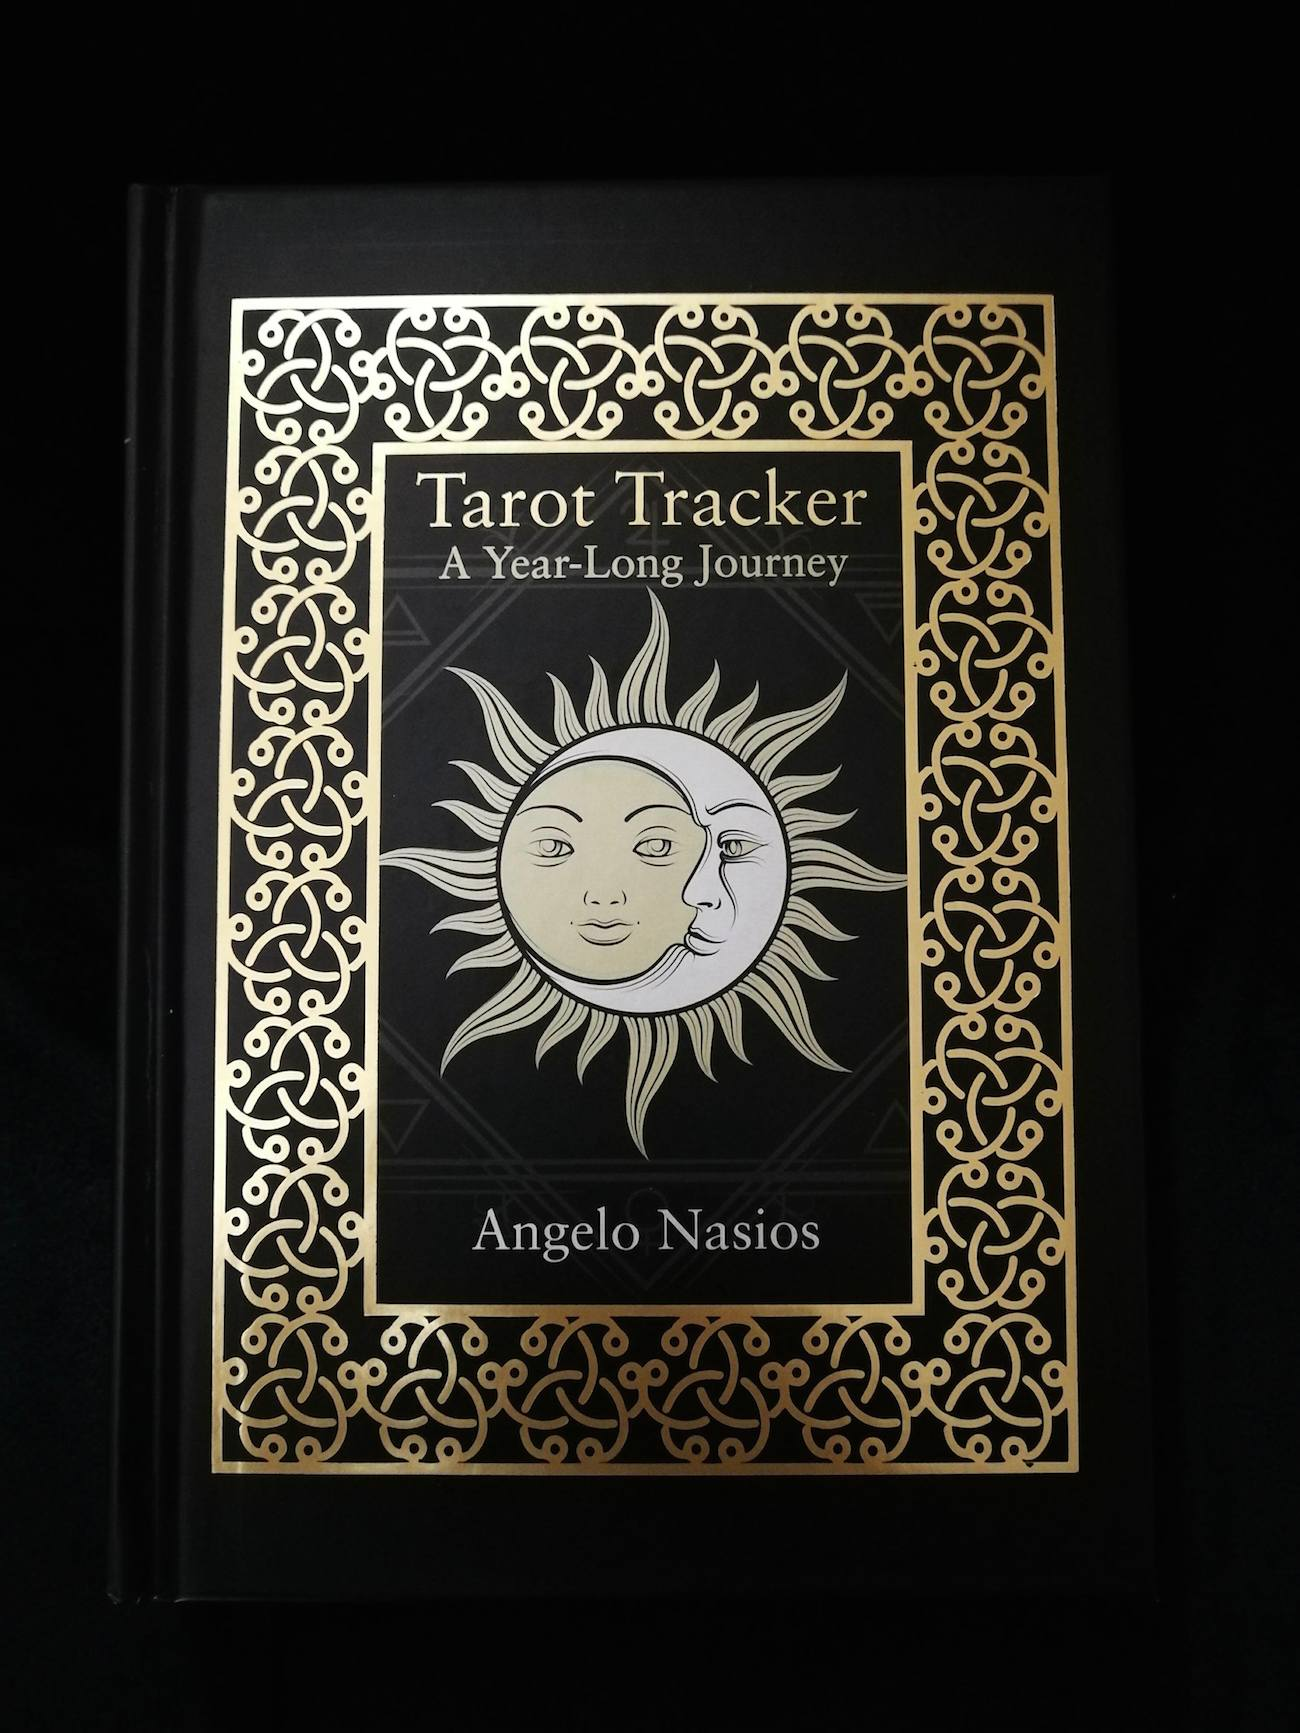 Tarot Tracker Tips Artist's Advice The Queen's Sword Angelo Nasios